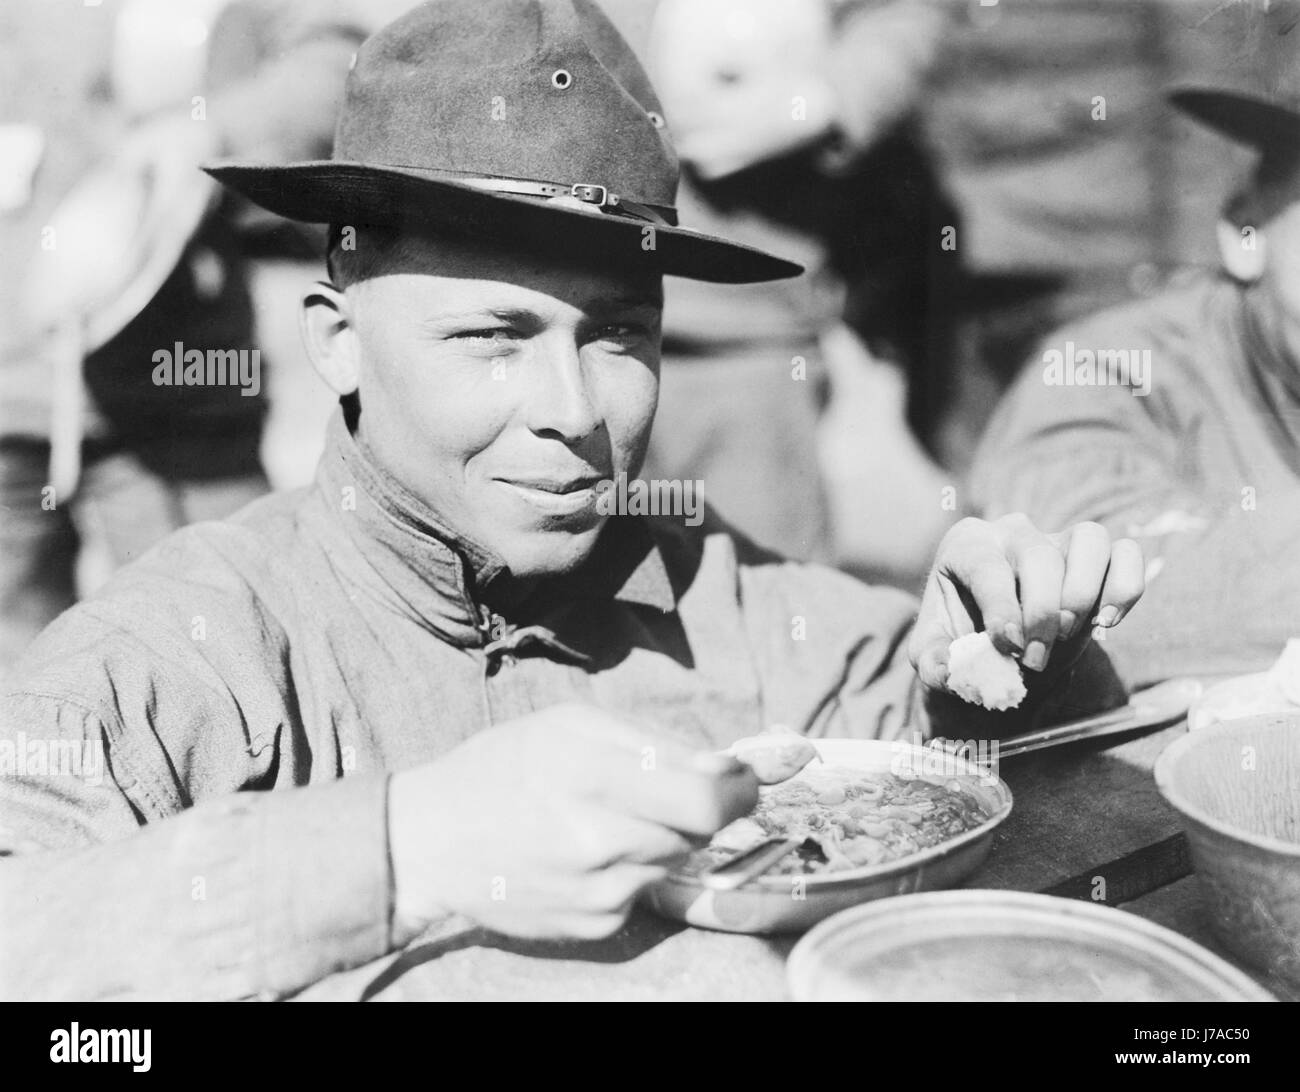 U.S. Army soldier eating during World War II. - Stock Image